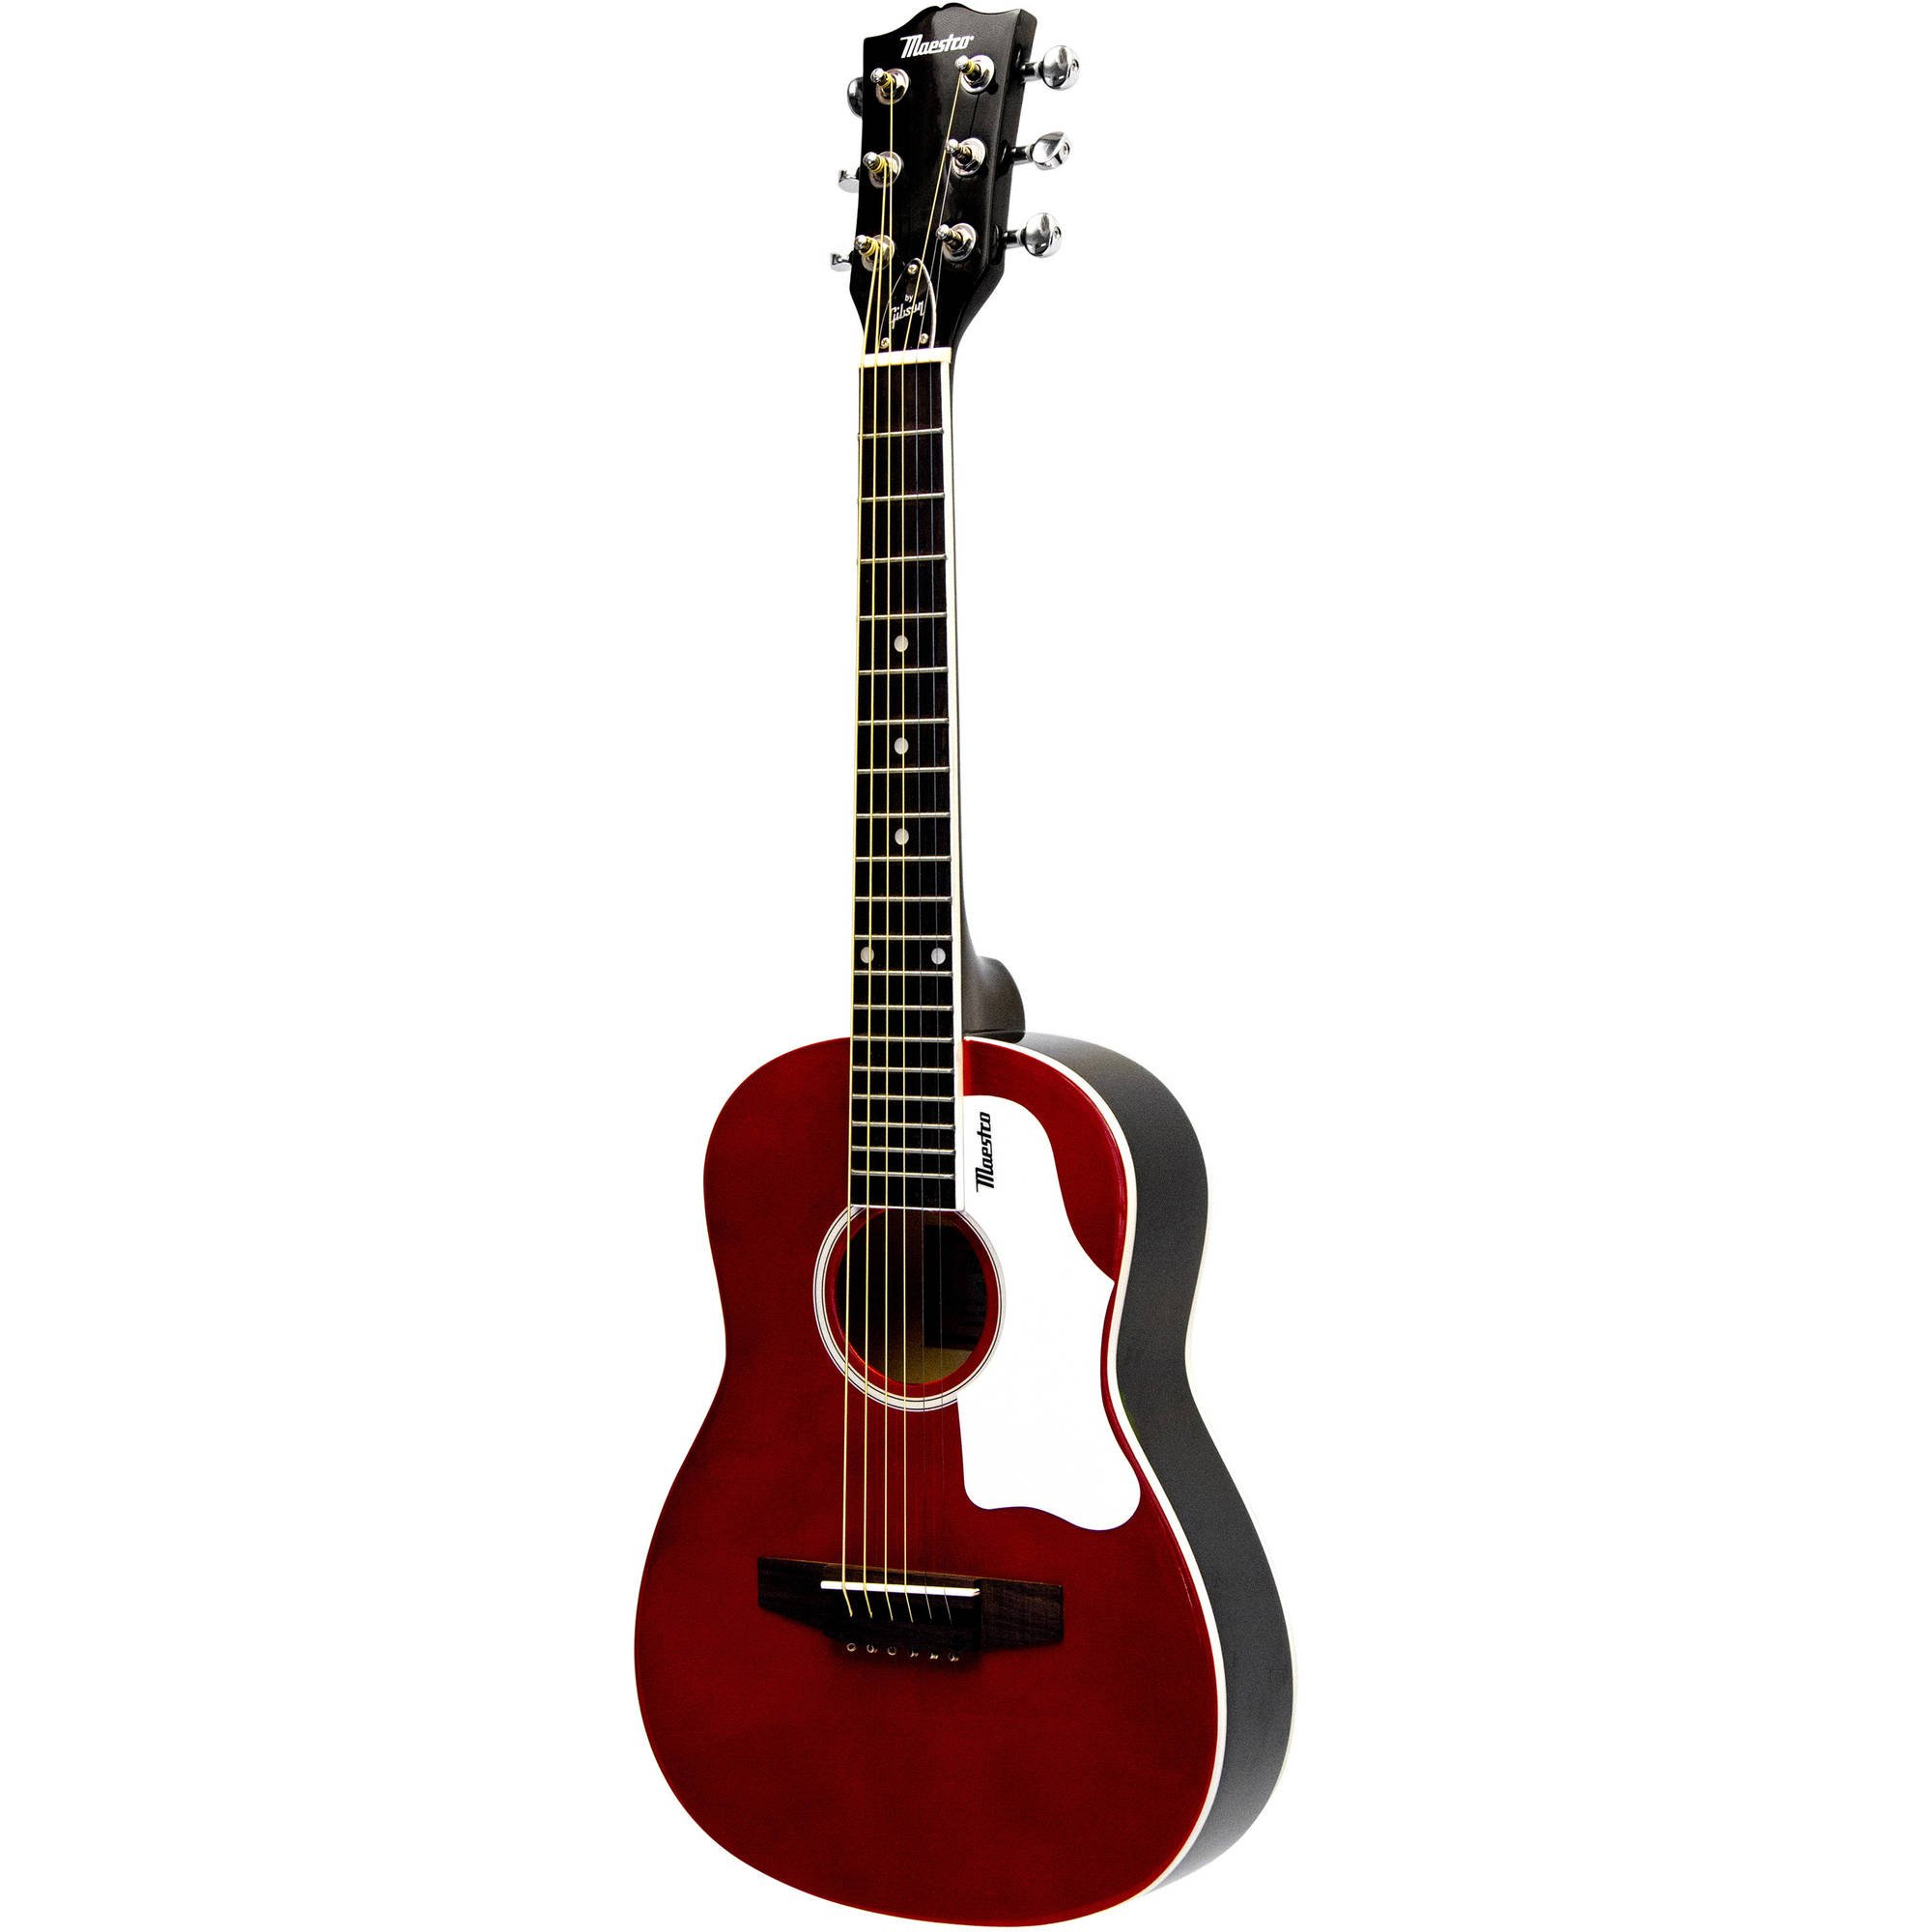 Maestro By Gibson 30'' Mini-Acoustic Guitar with Gig Bag, Red